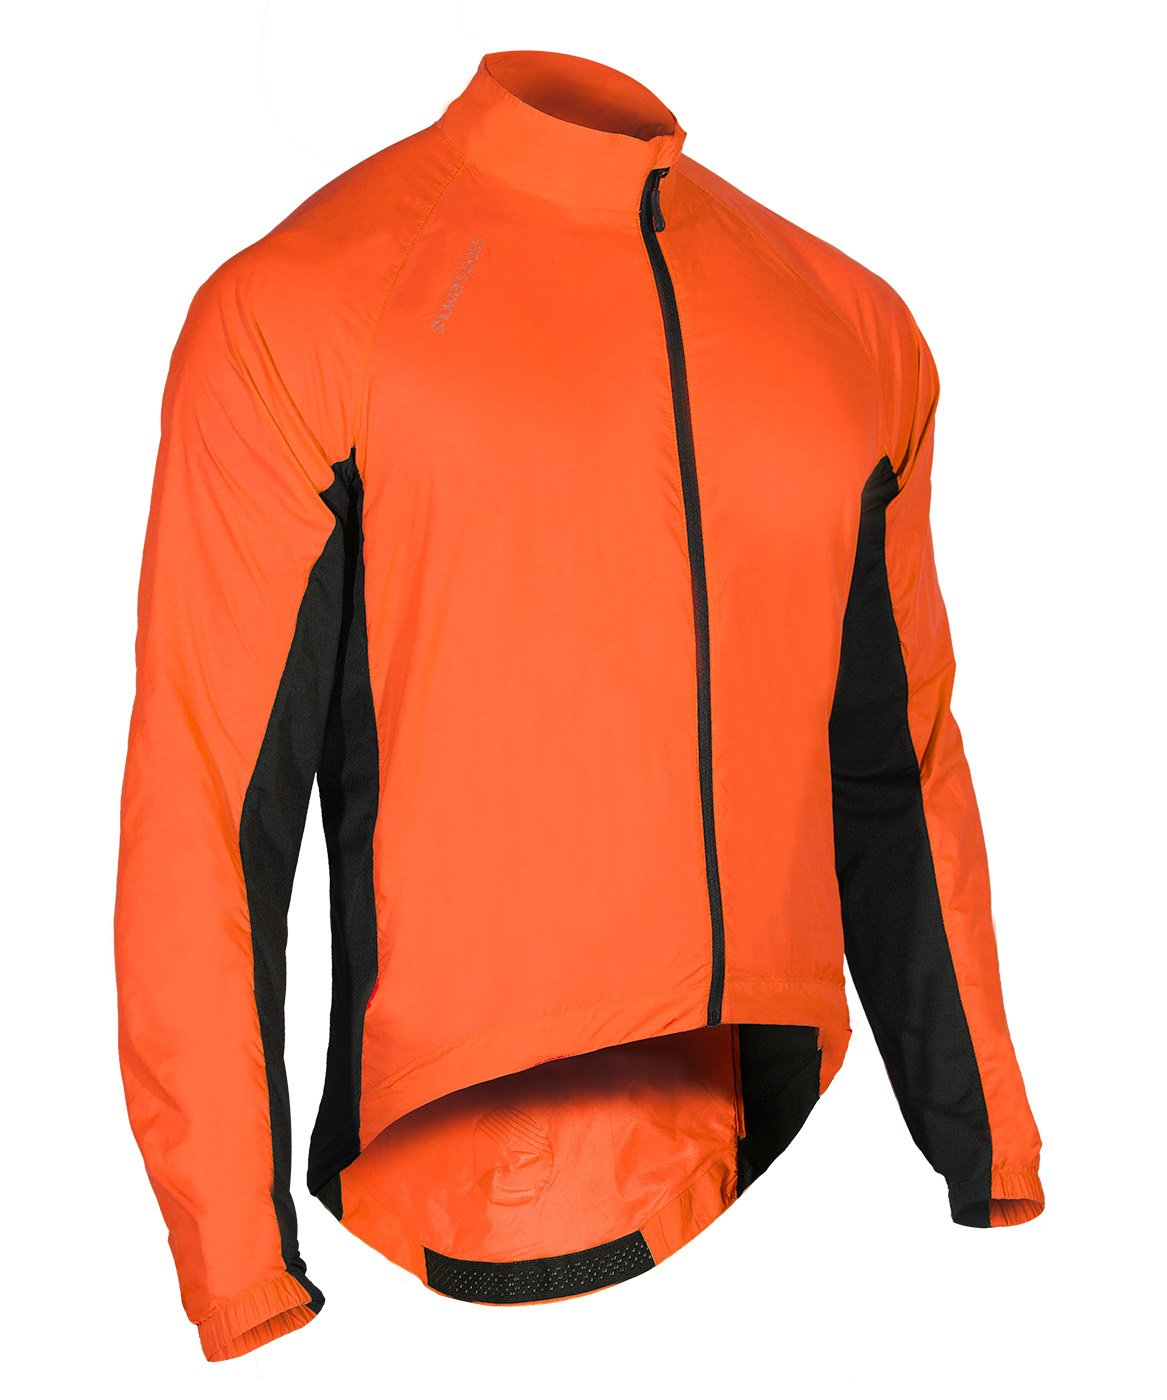 Men's Ultralight Wind Jacket